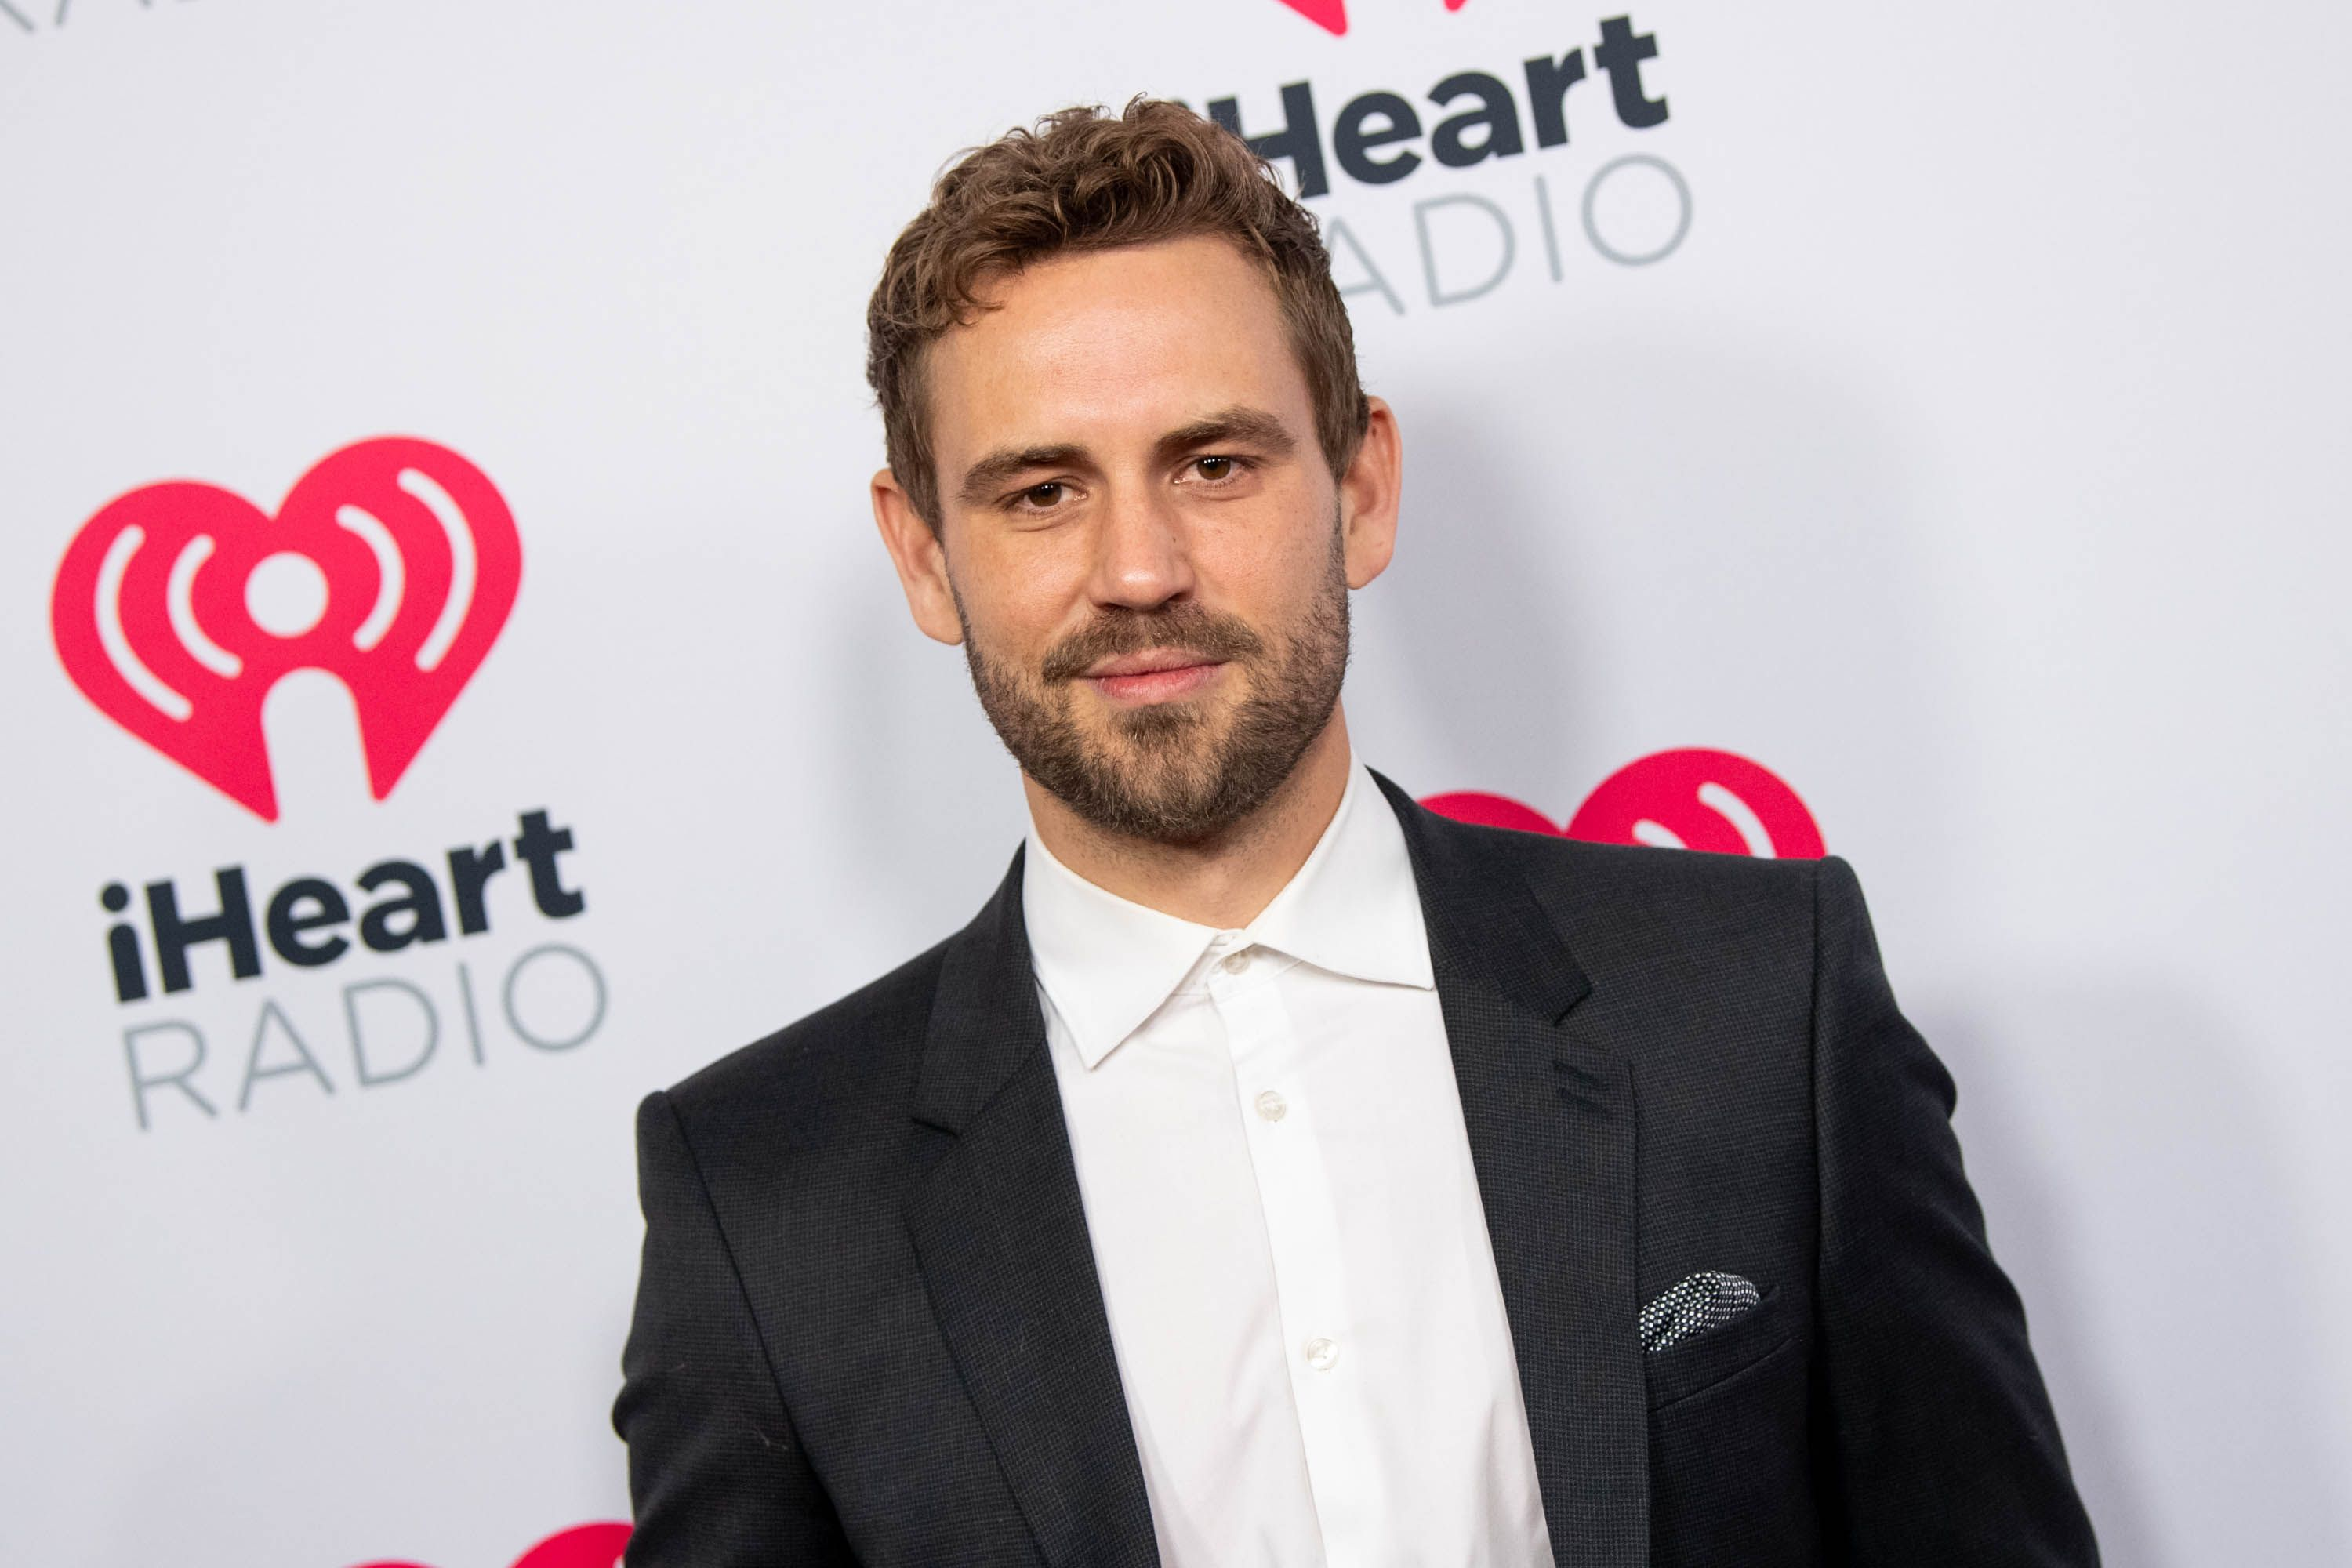 Nick Viall at an Iheart radio event